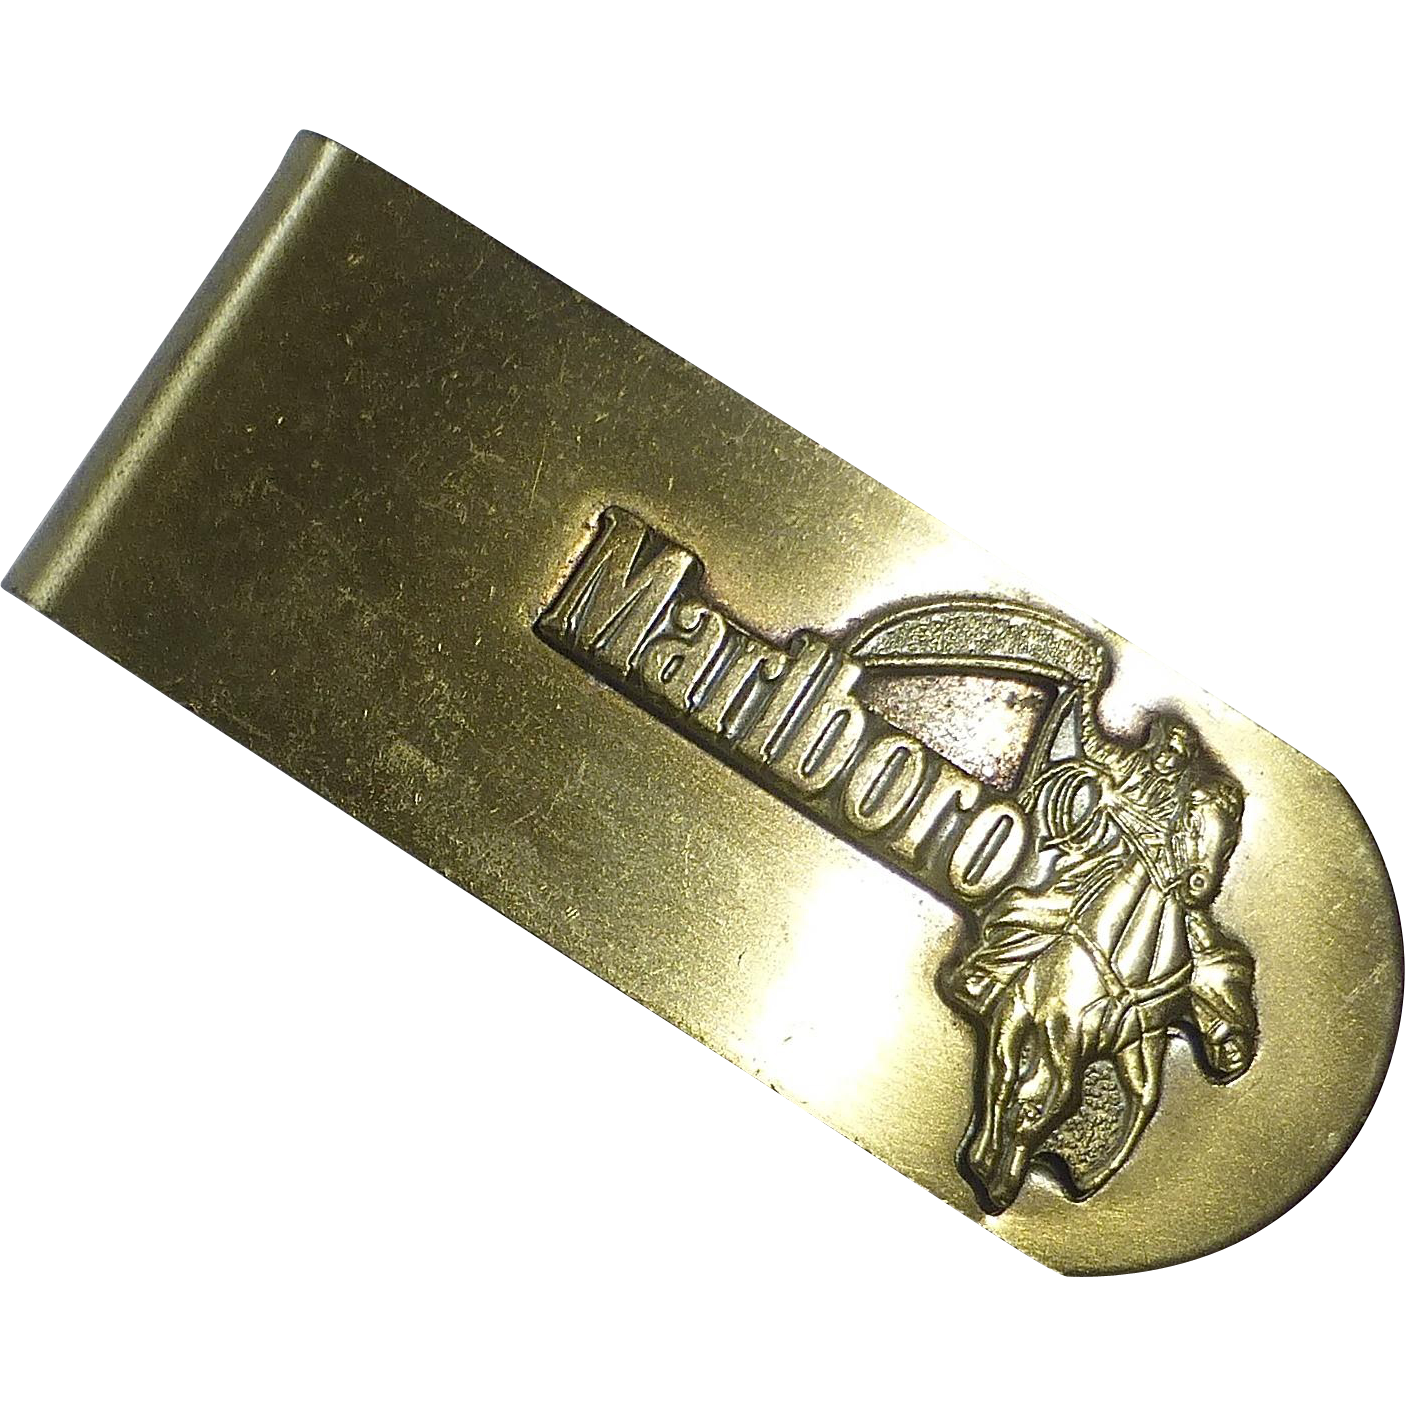 Marlboro Man Advertising Brass Money Clip